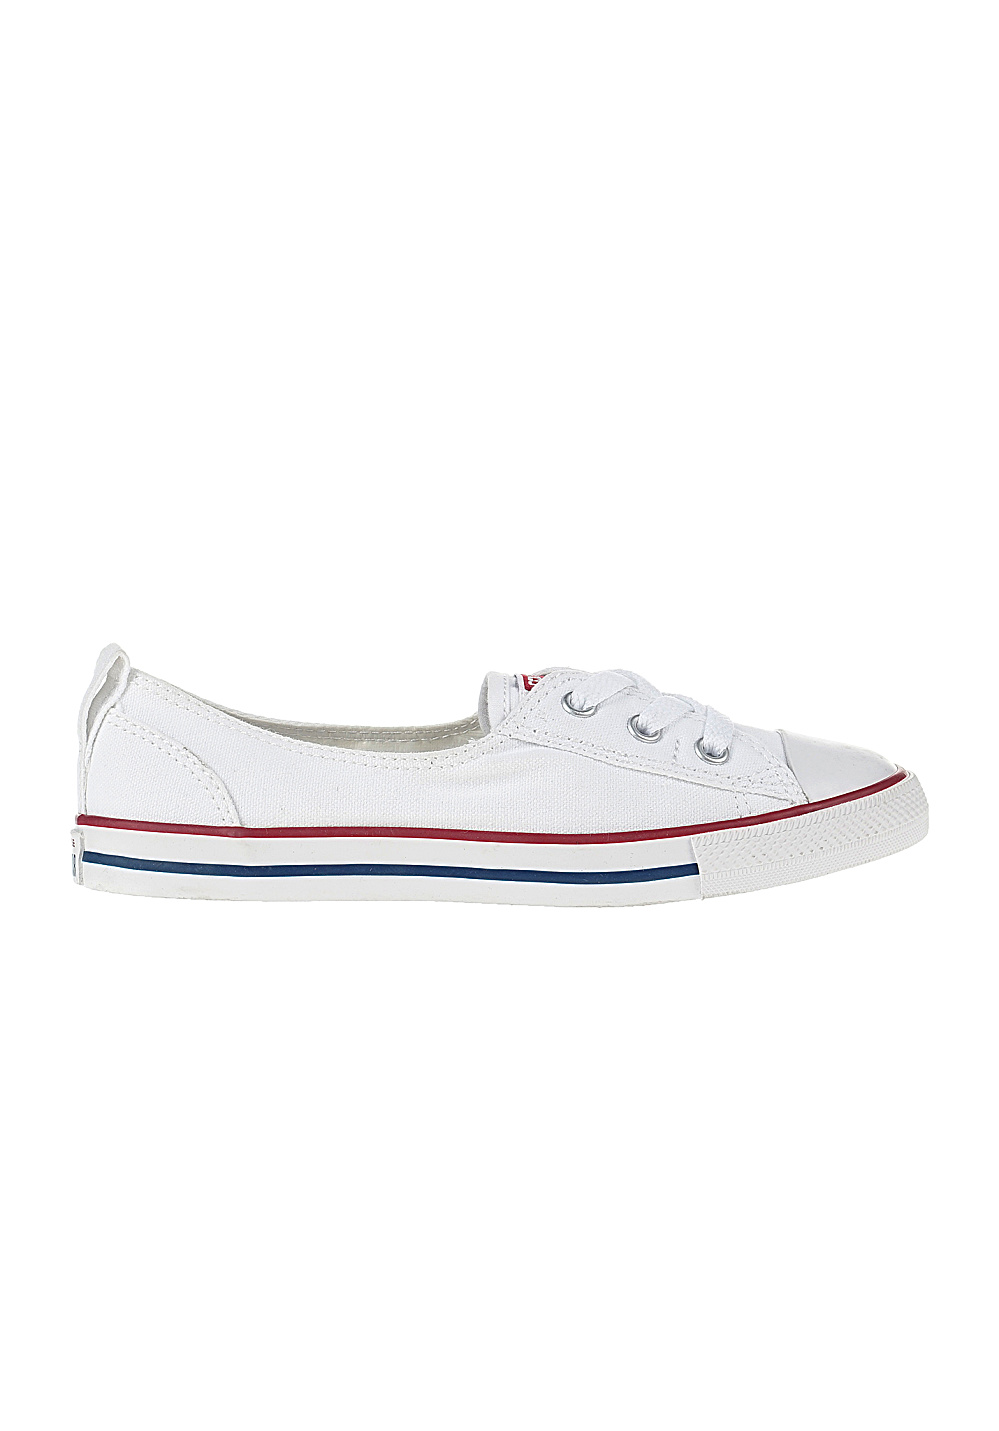 Converse Chuck Taylor All Star Ballet Lace Sneakers for Women White